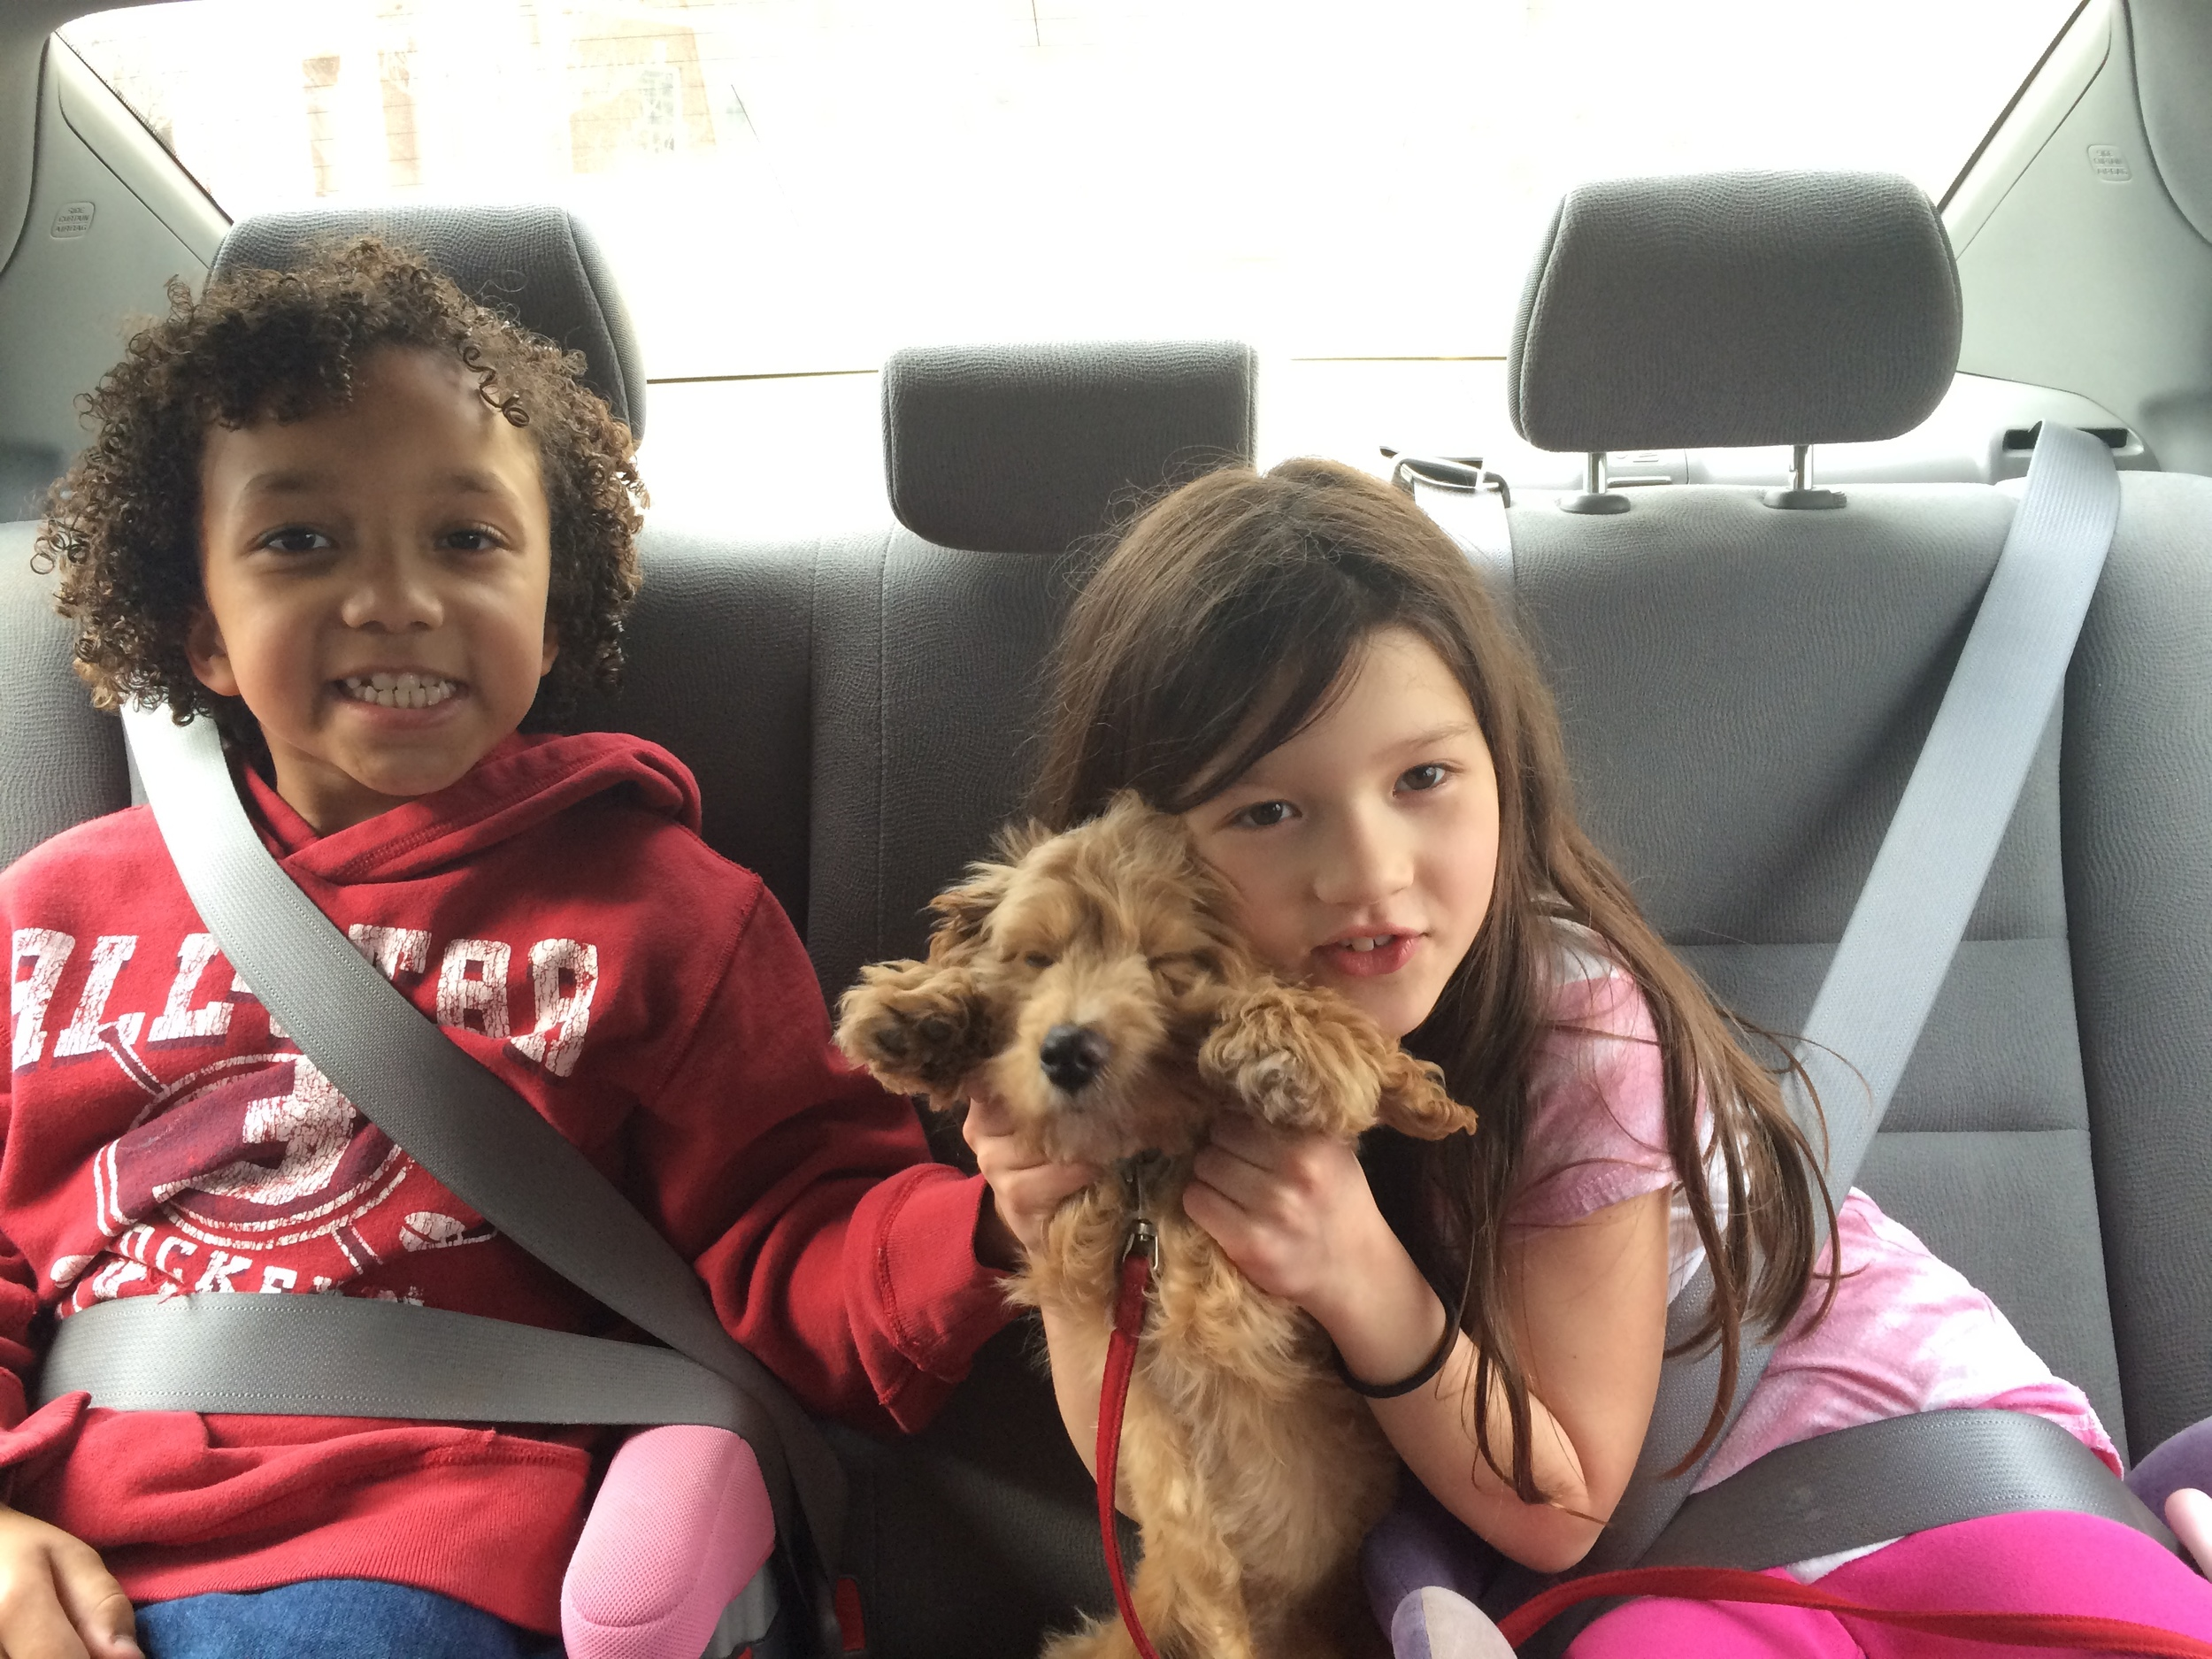 Hunter and my daughter, with our puppy